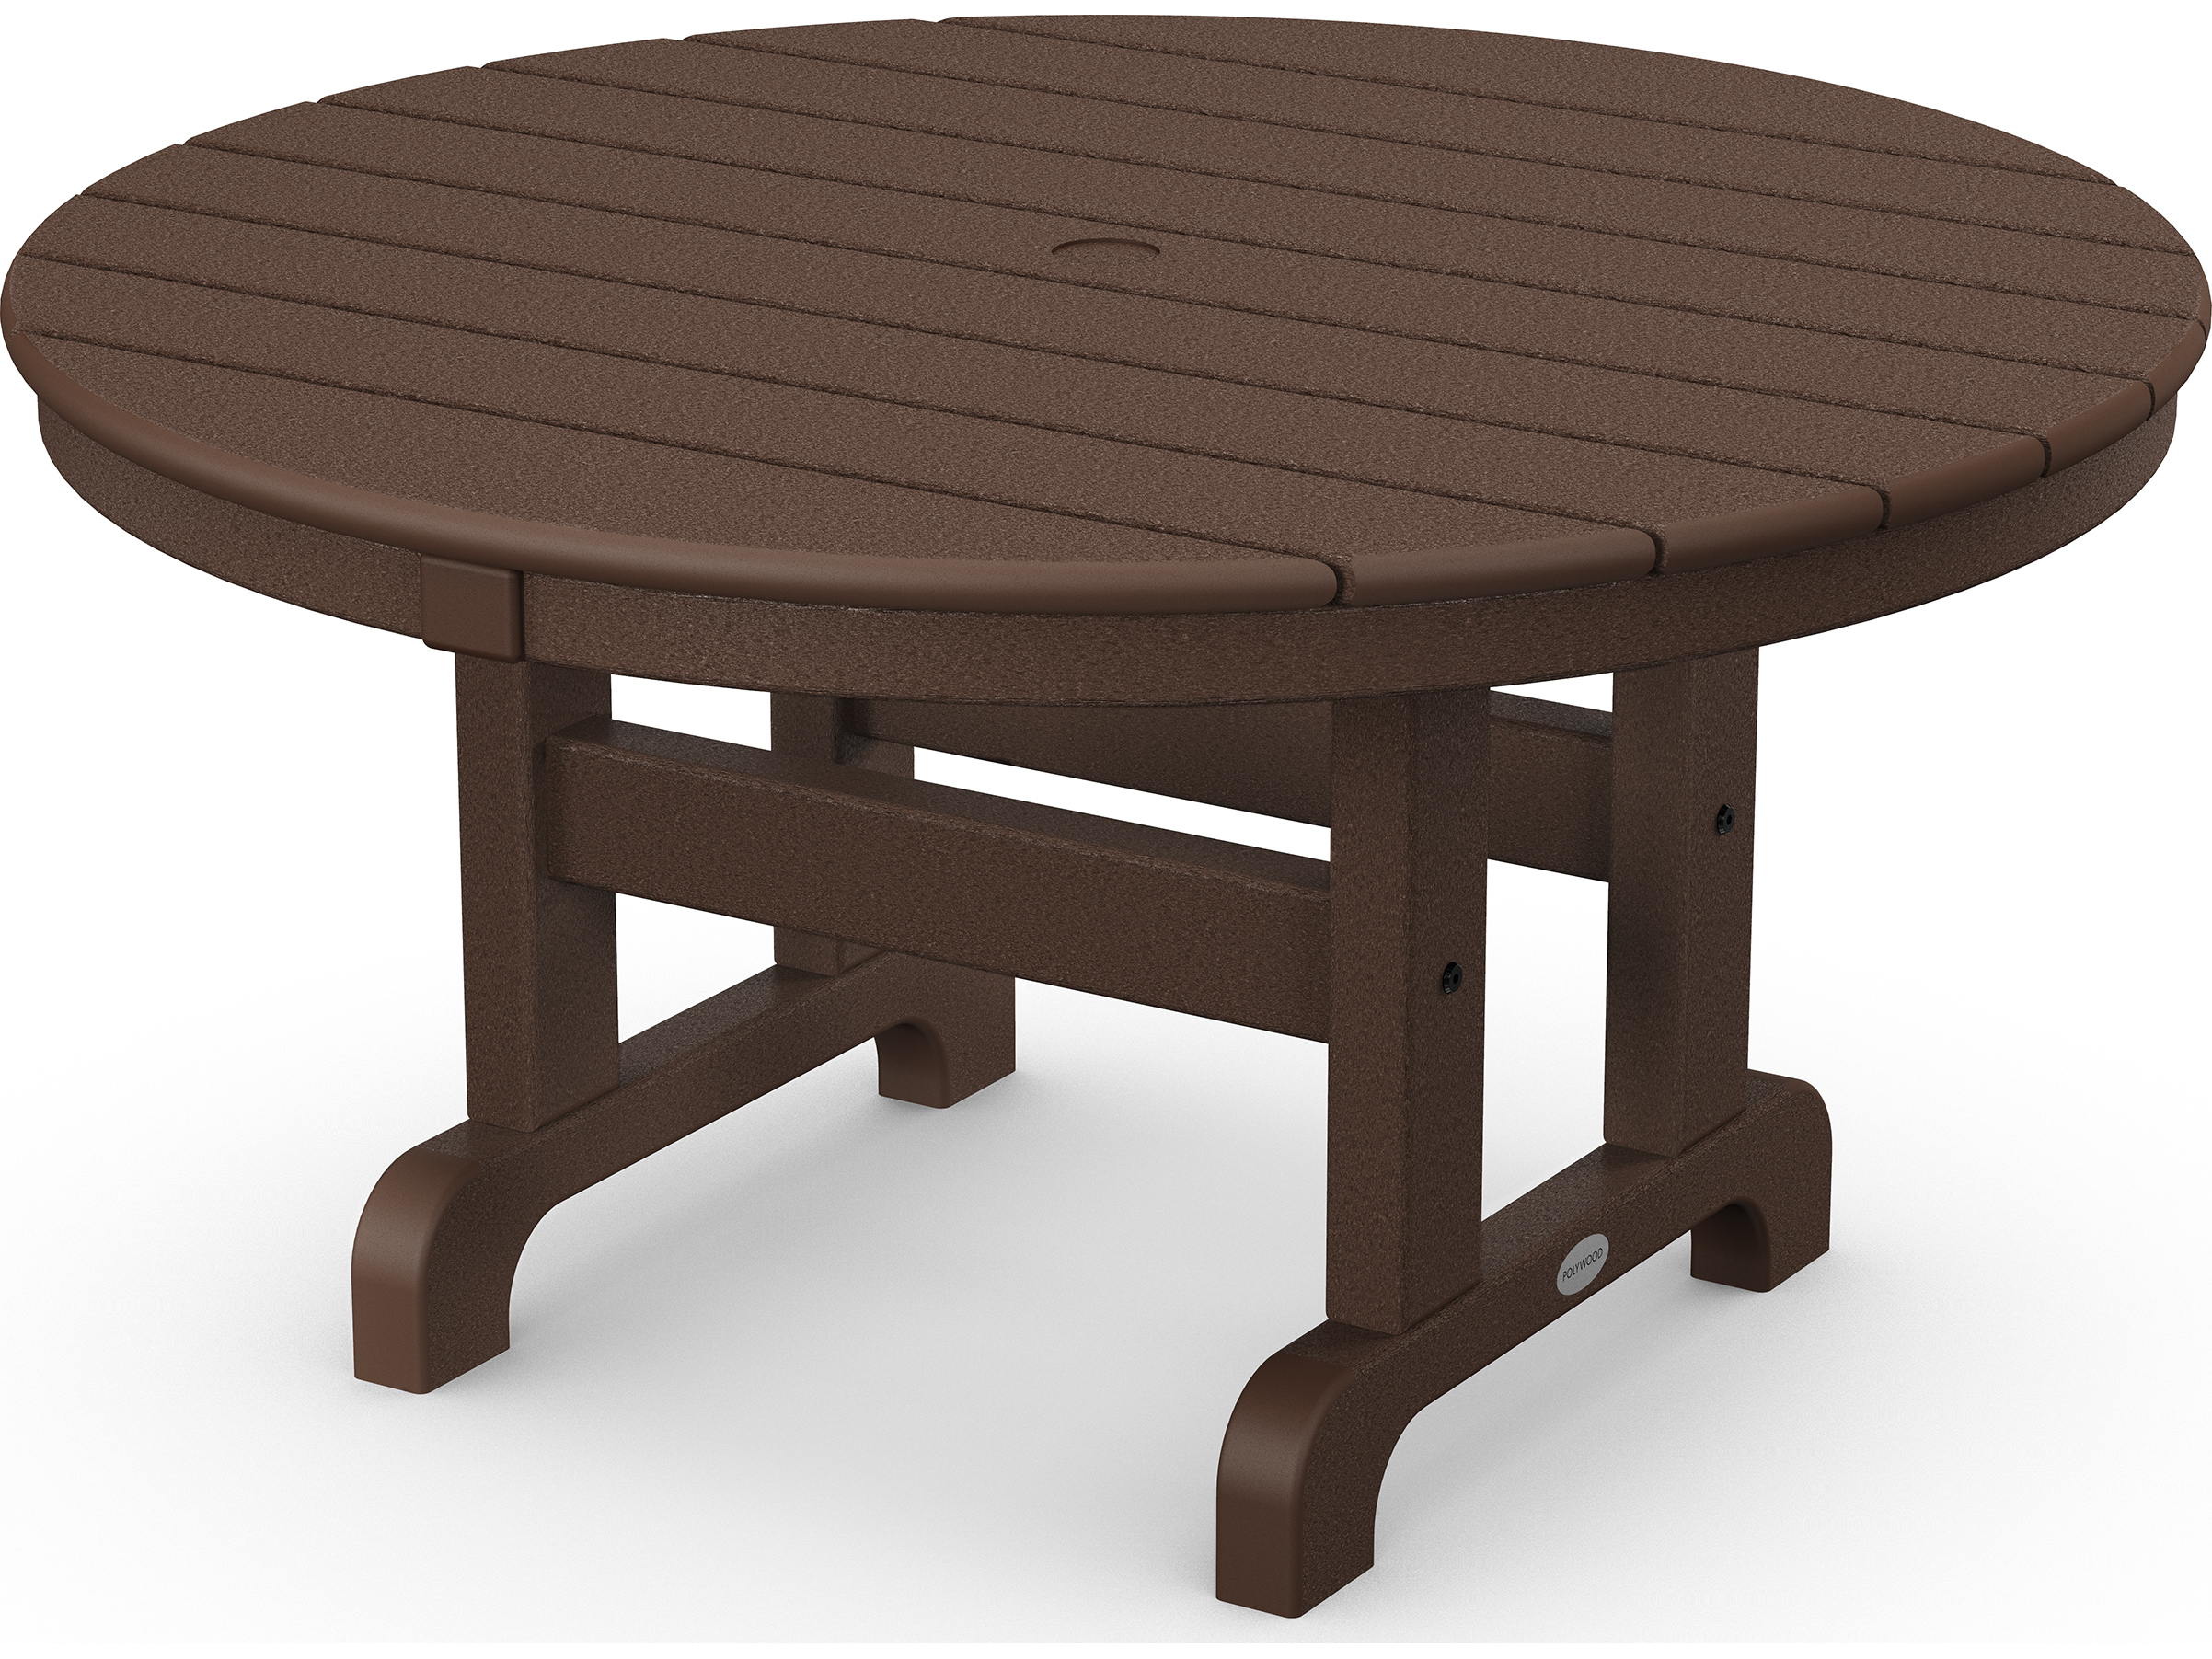 Polywoodr Traditional Recycled Plastic 36 Round Chat Table